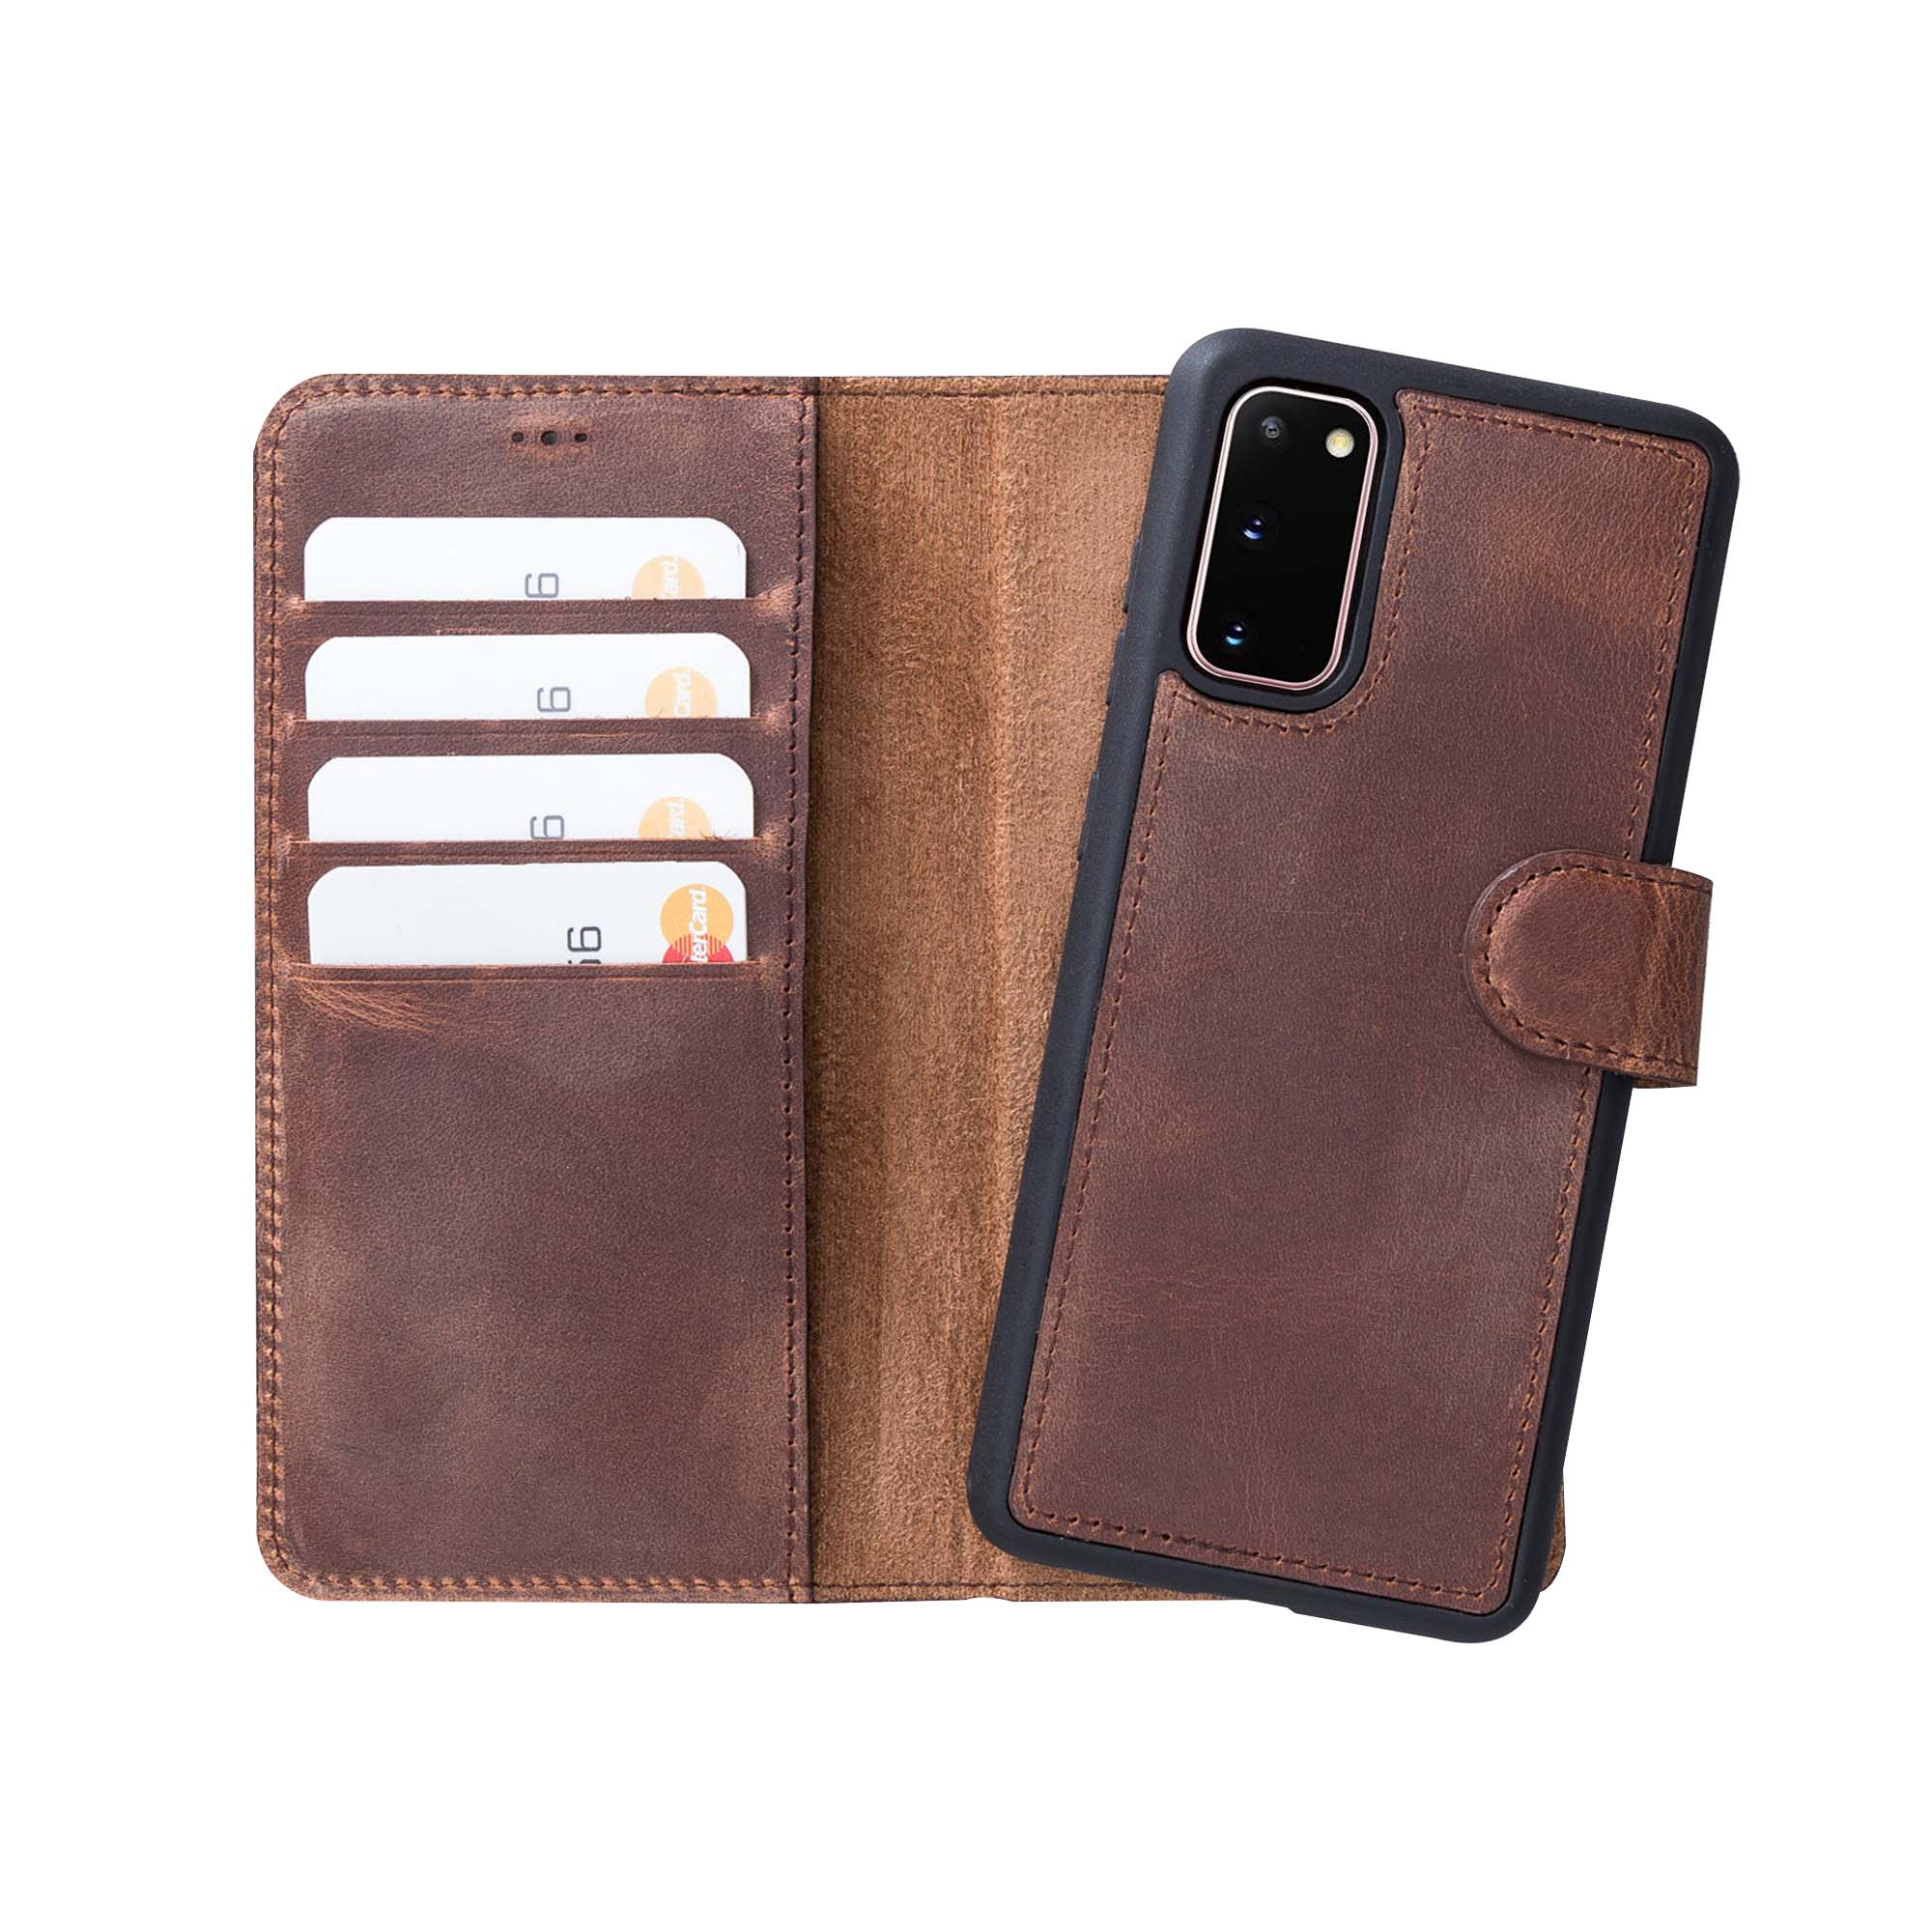 "Magic Magnetic Detachable Leather Wallet Case for Samsung Galaxy S20 (6.2"") - BROWN - saracleather"